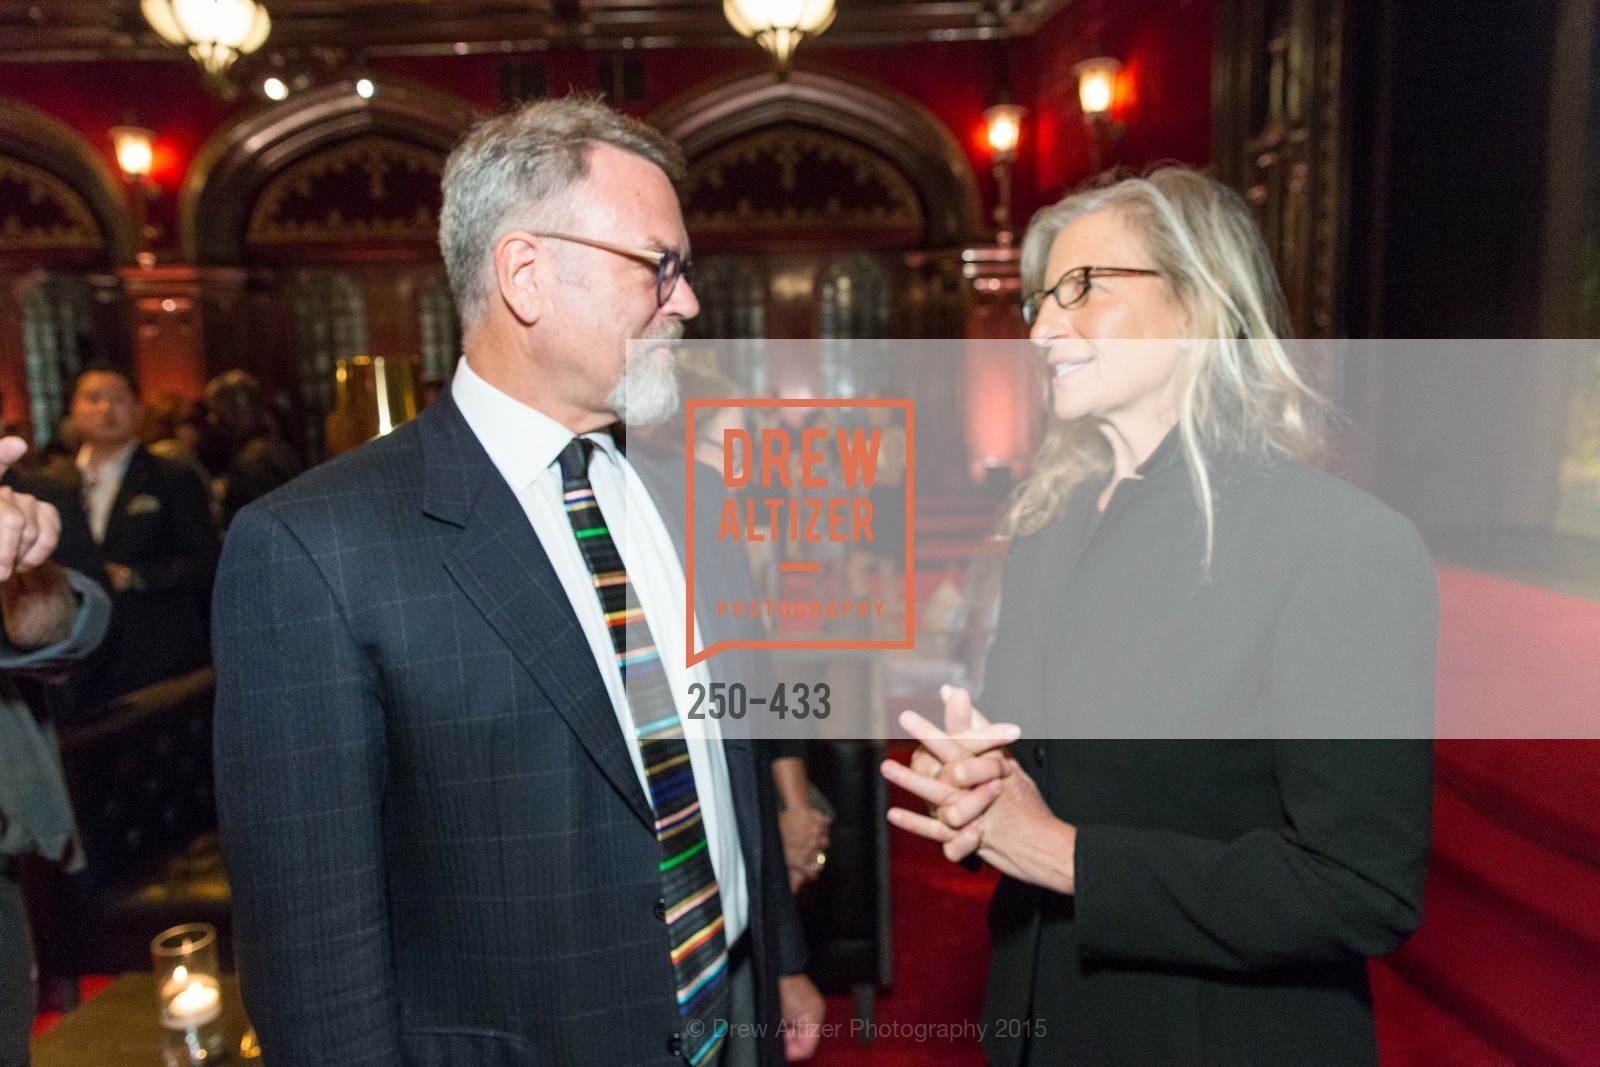 Nion McEvoy, Annie Leibovitz, SFMOMA Contemporary Vision Award, Regency Ballroom. 1300 Van Ness, November 3rd, 2015,Drew Altizer, Drew Altizer Photography, full-service agency, private events, San Francisco photographer, photographer california